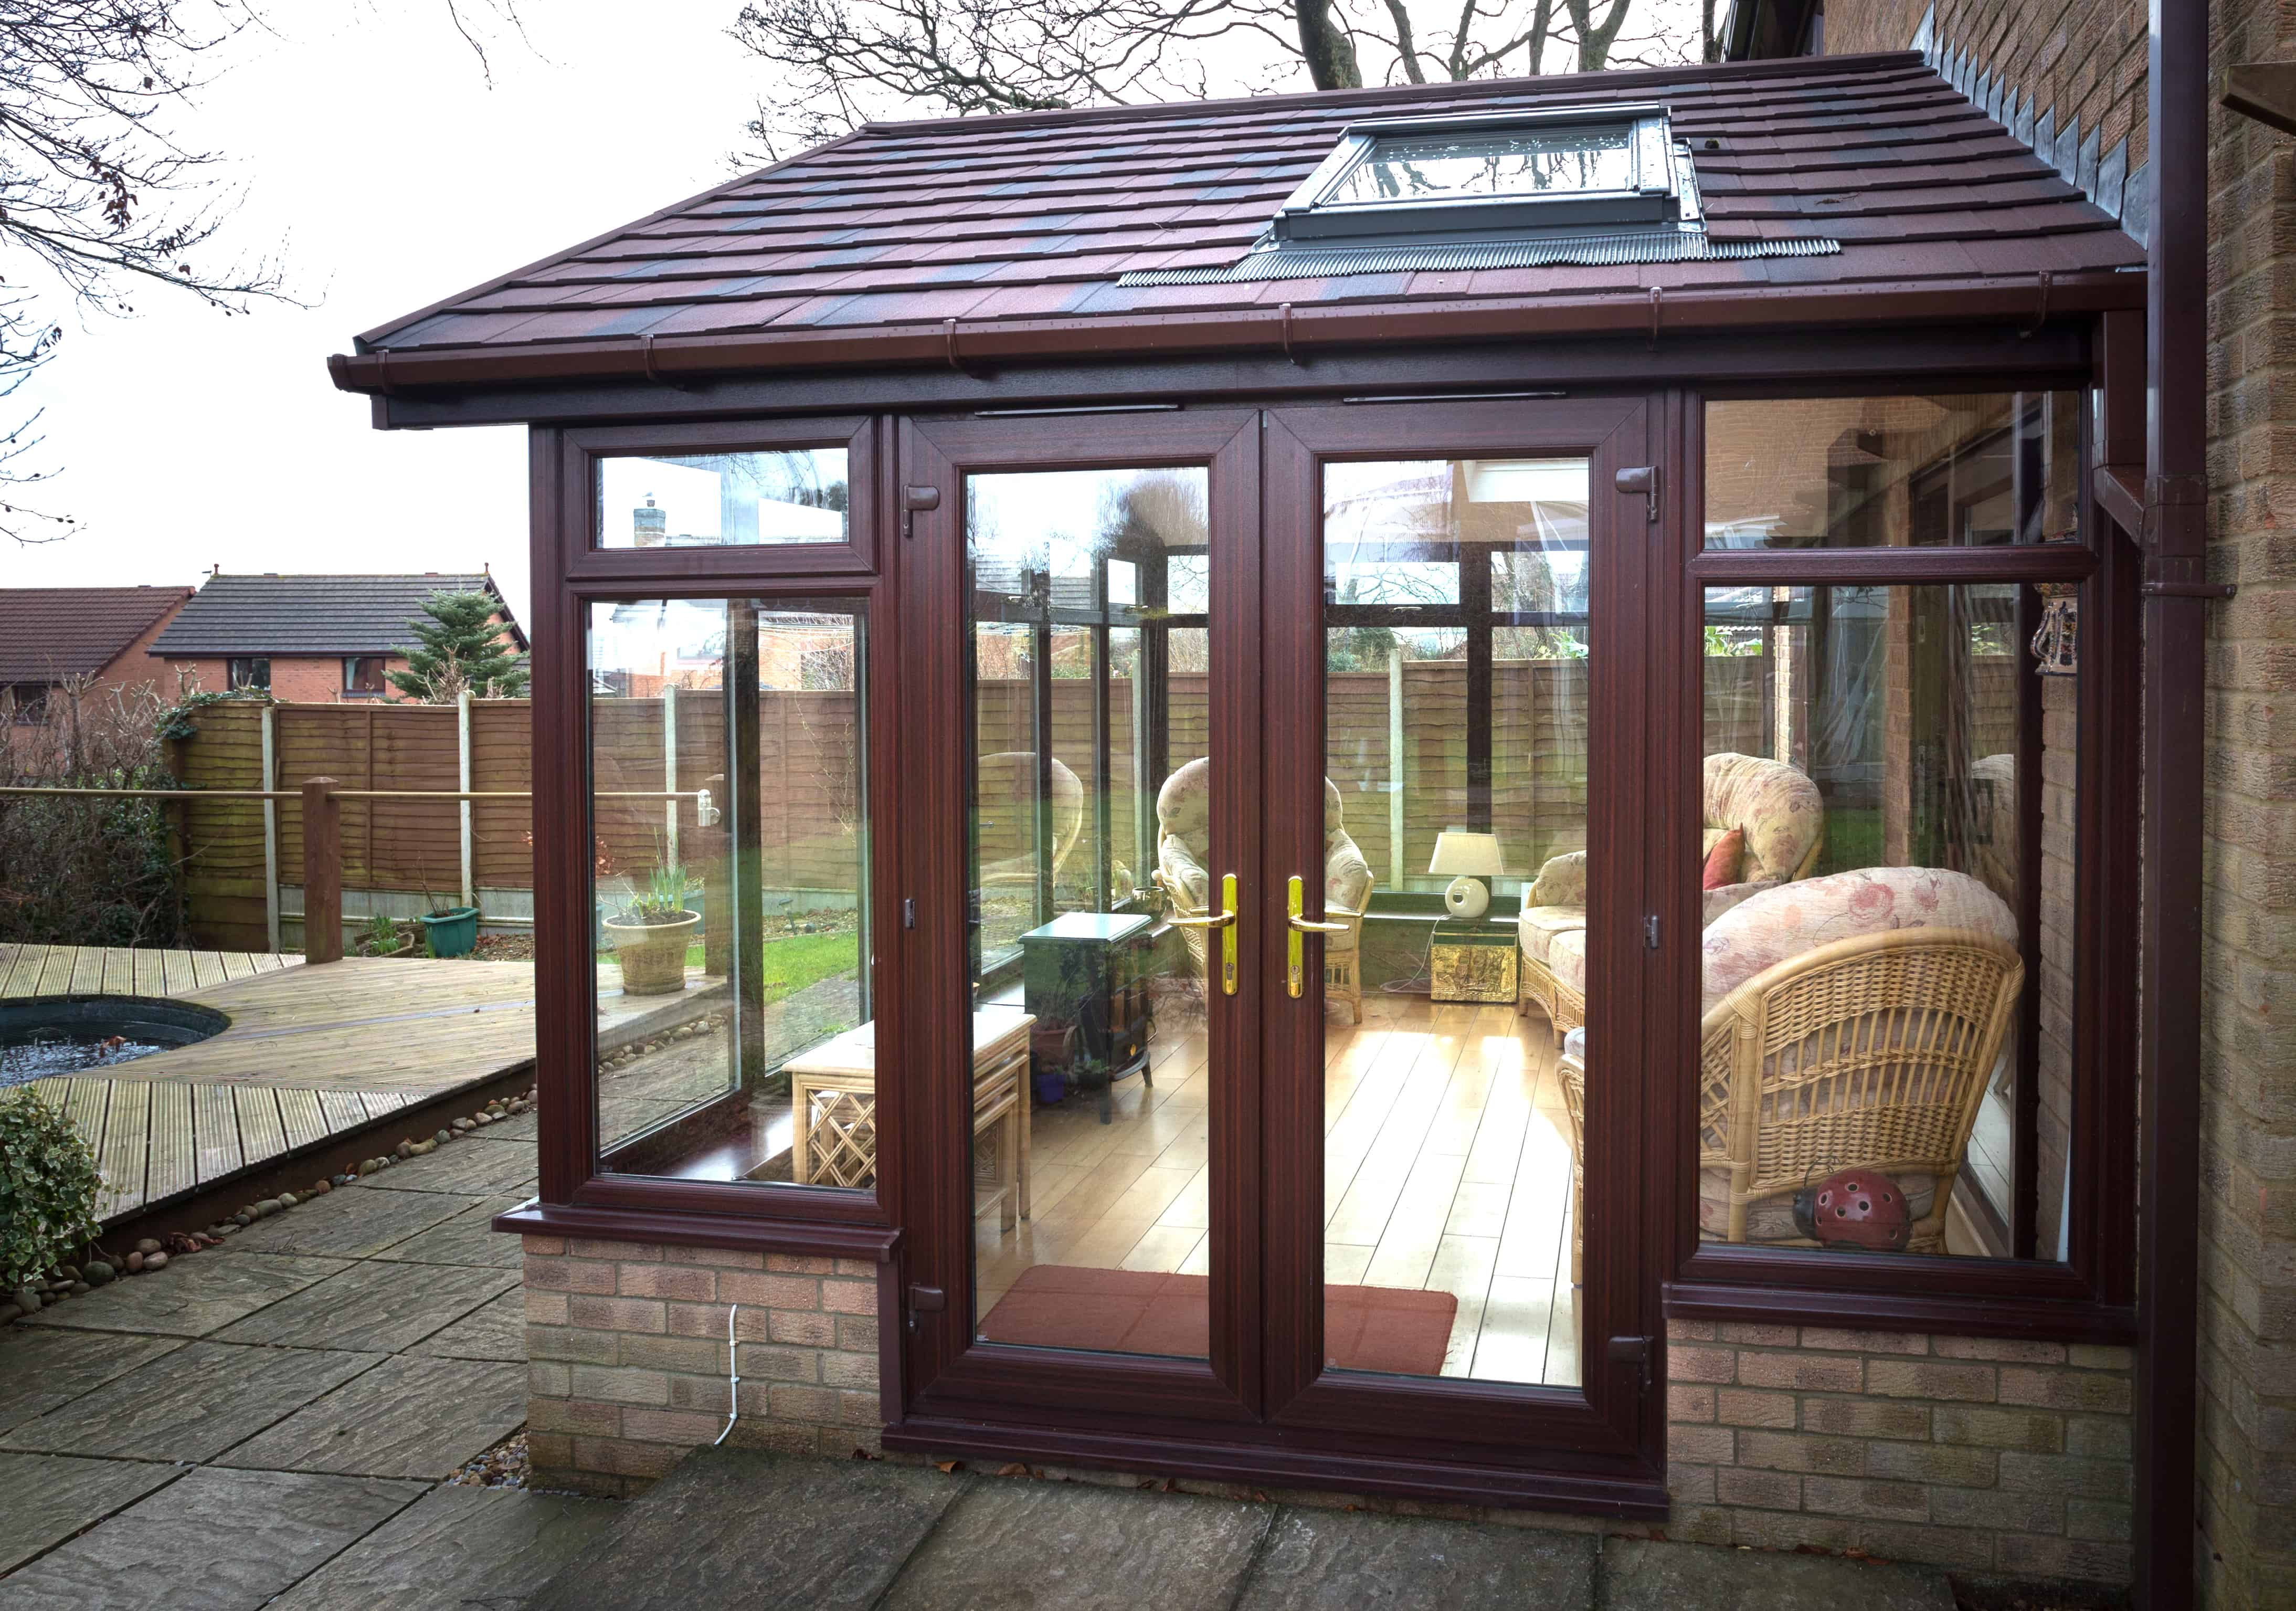 Conservatory Roof Conversion >> Gable Ended Conservatory Roof Replacement - Leka Systems